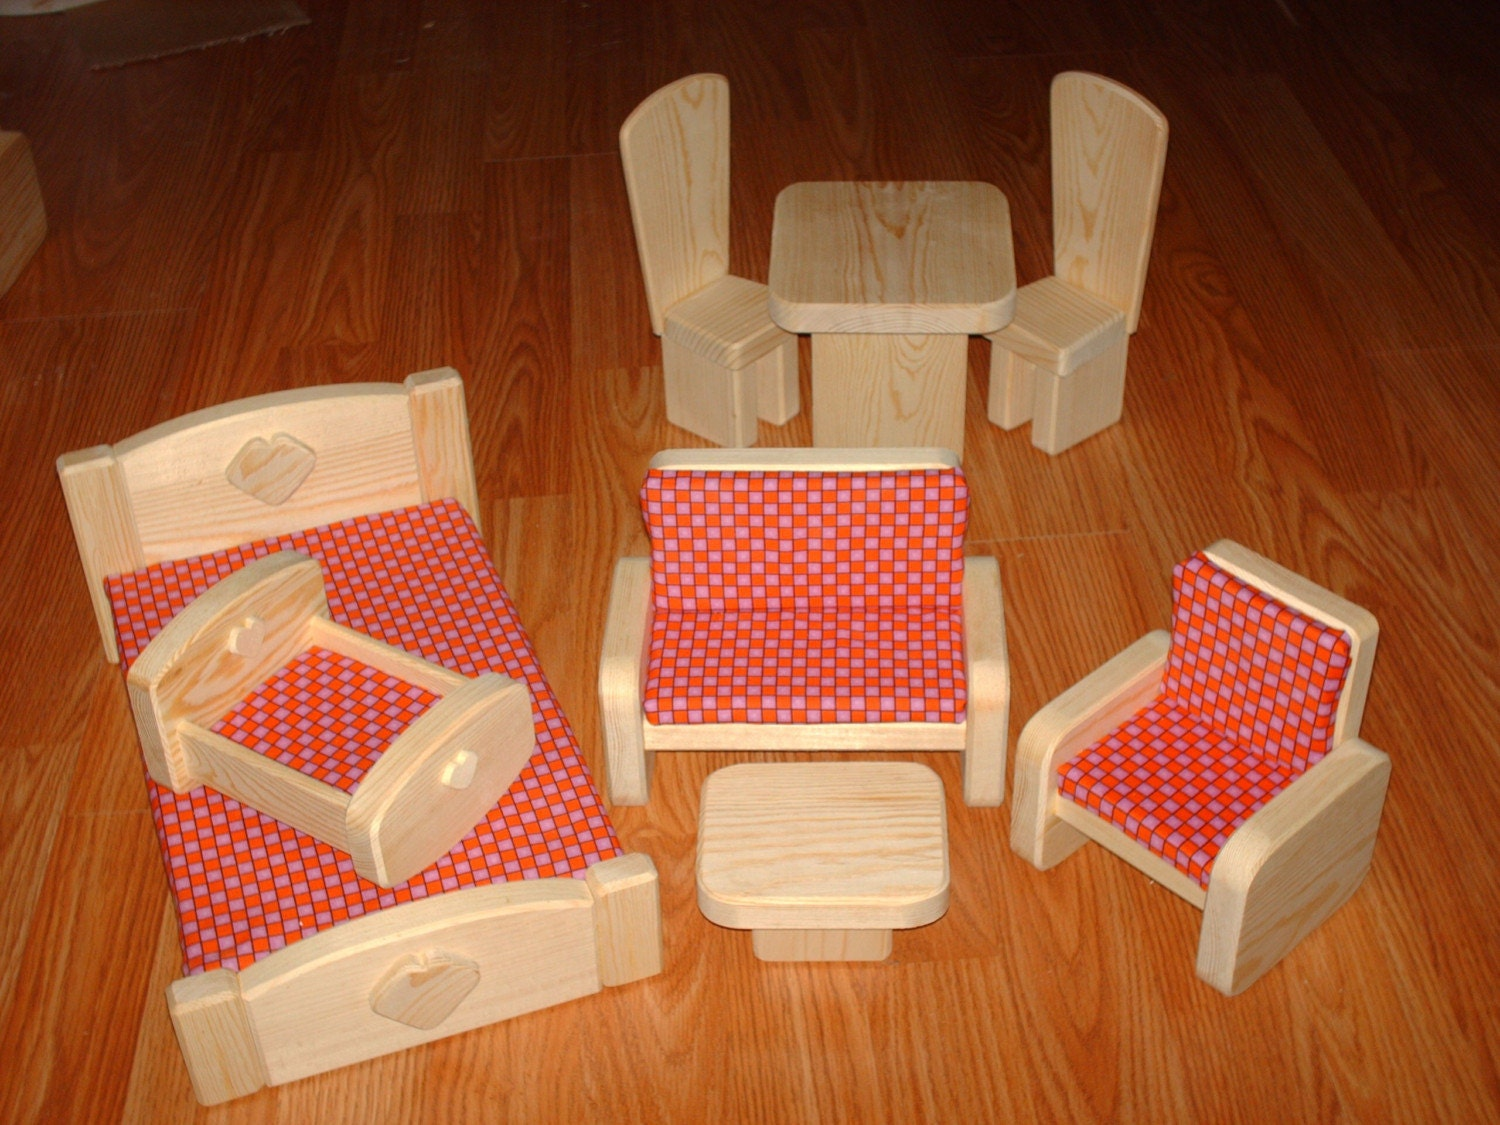 8 Piece Barbie Scaled Wooden Furniture Set Red Checkered